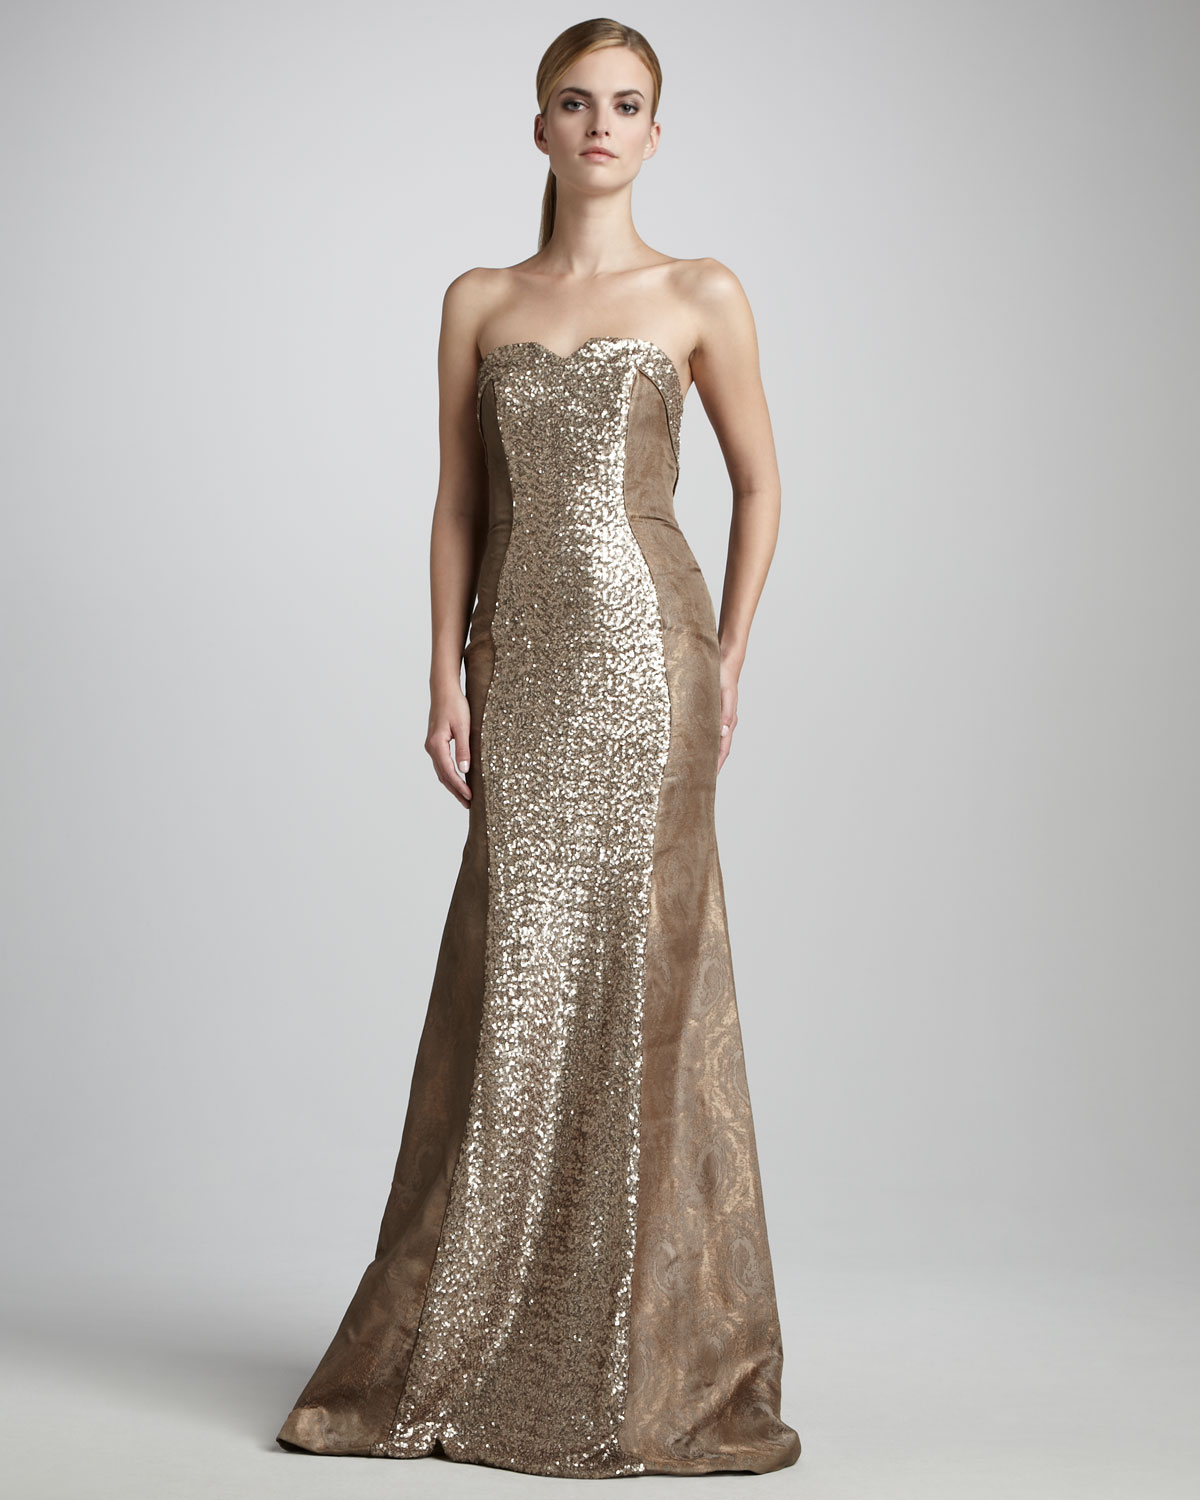 Beautiful Theia Golden Blossom Gown Collection - Images for wedding ...